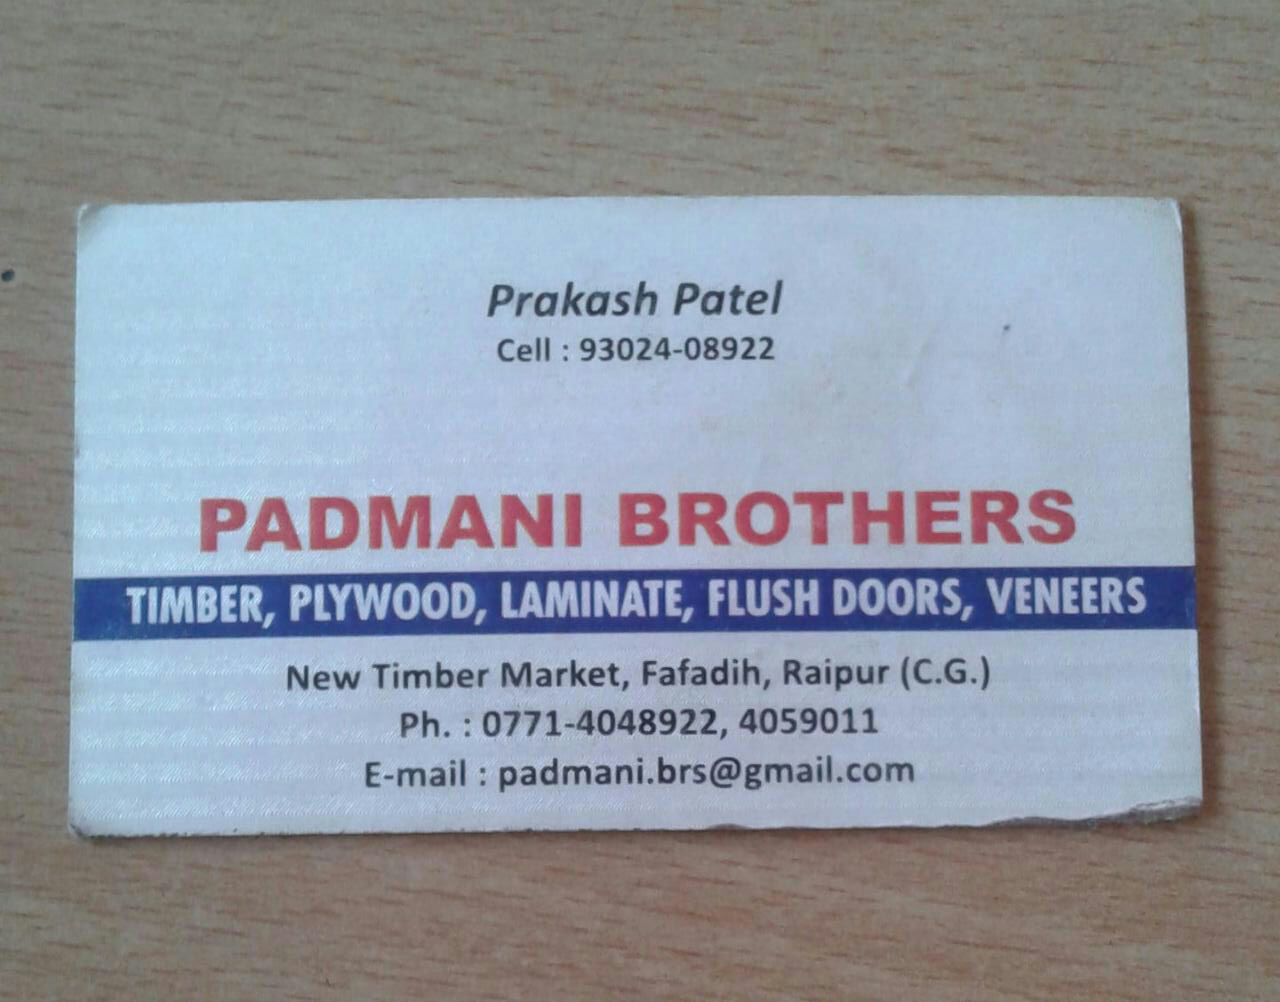 Padmani Brothers Timber Plywood